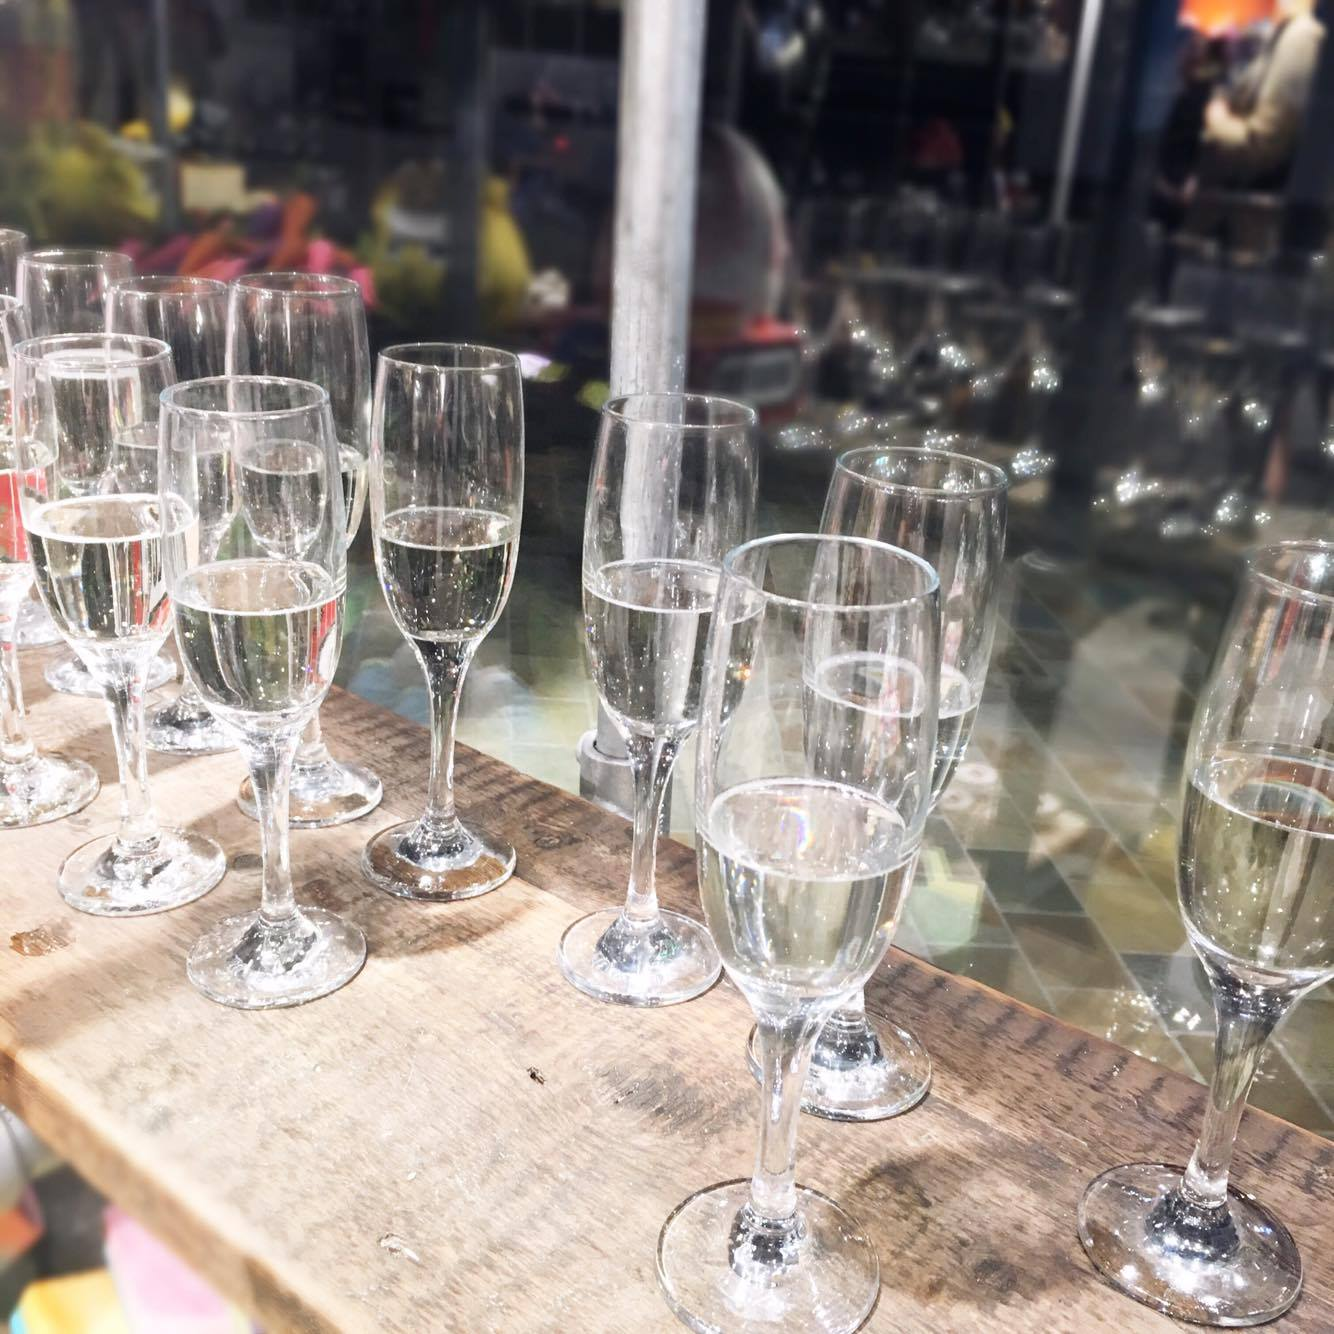 Image of Glasses of Prosecco